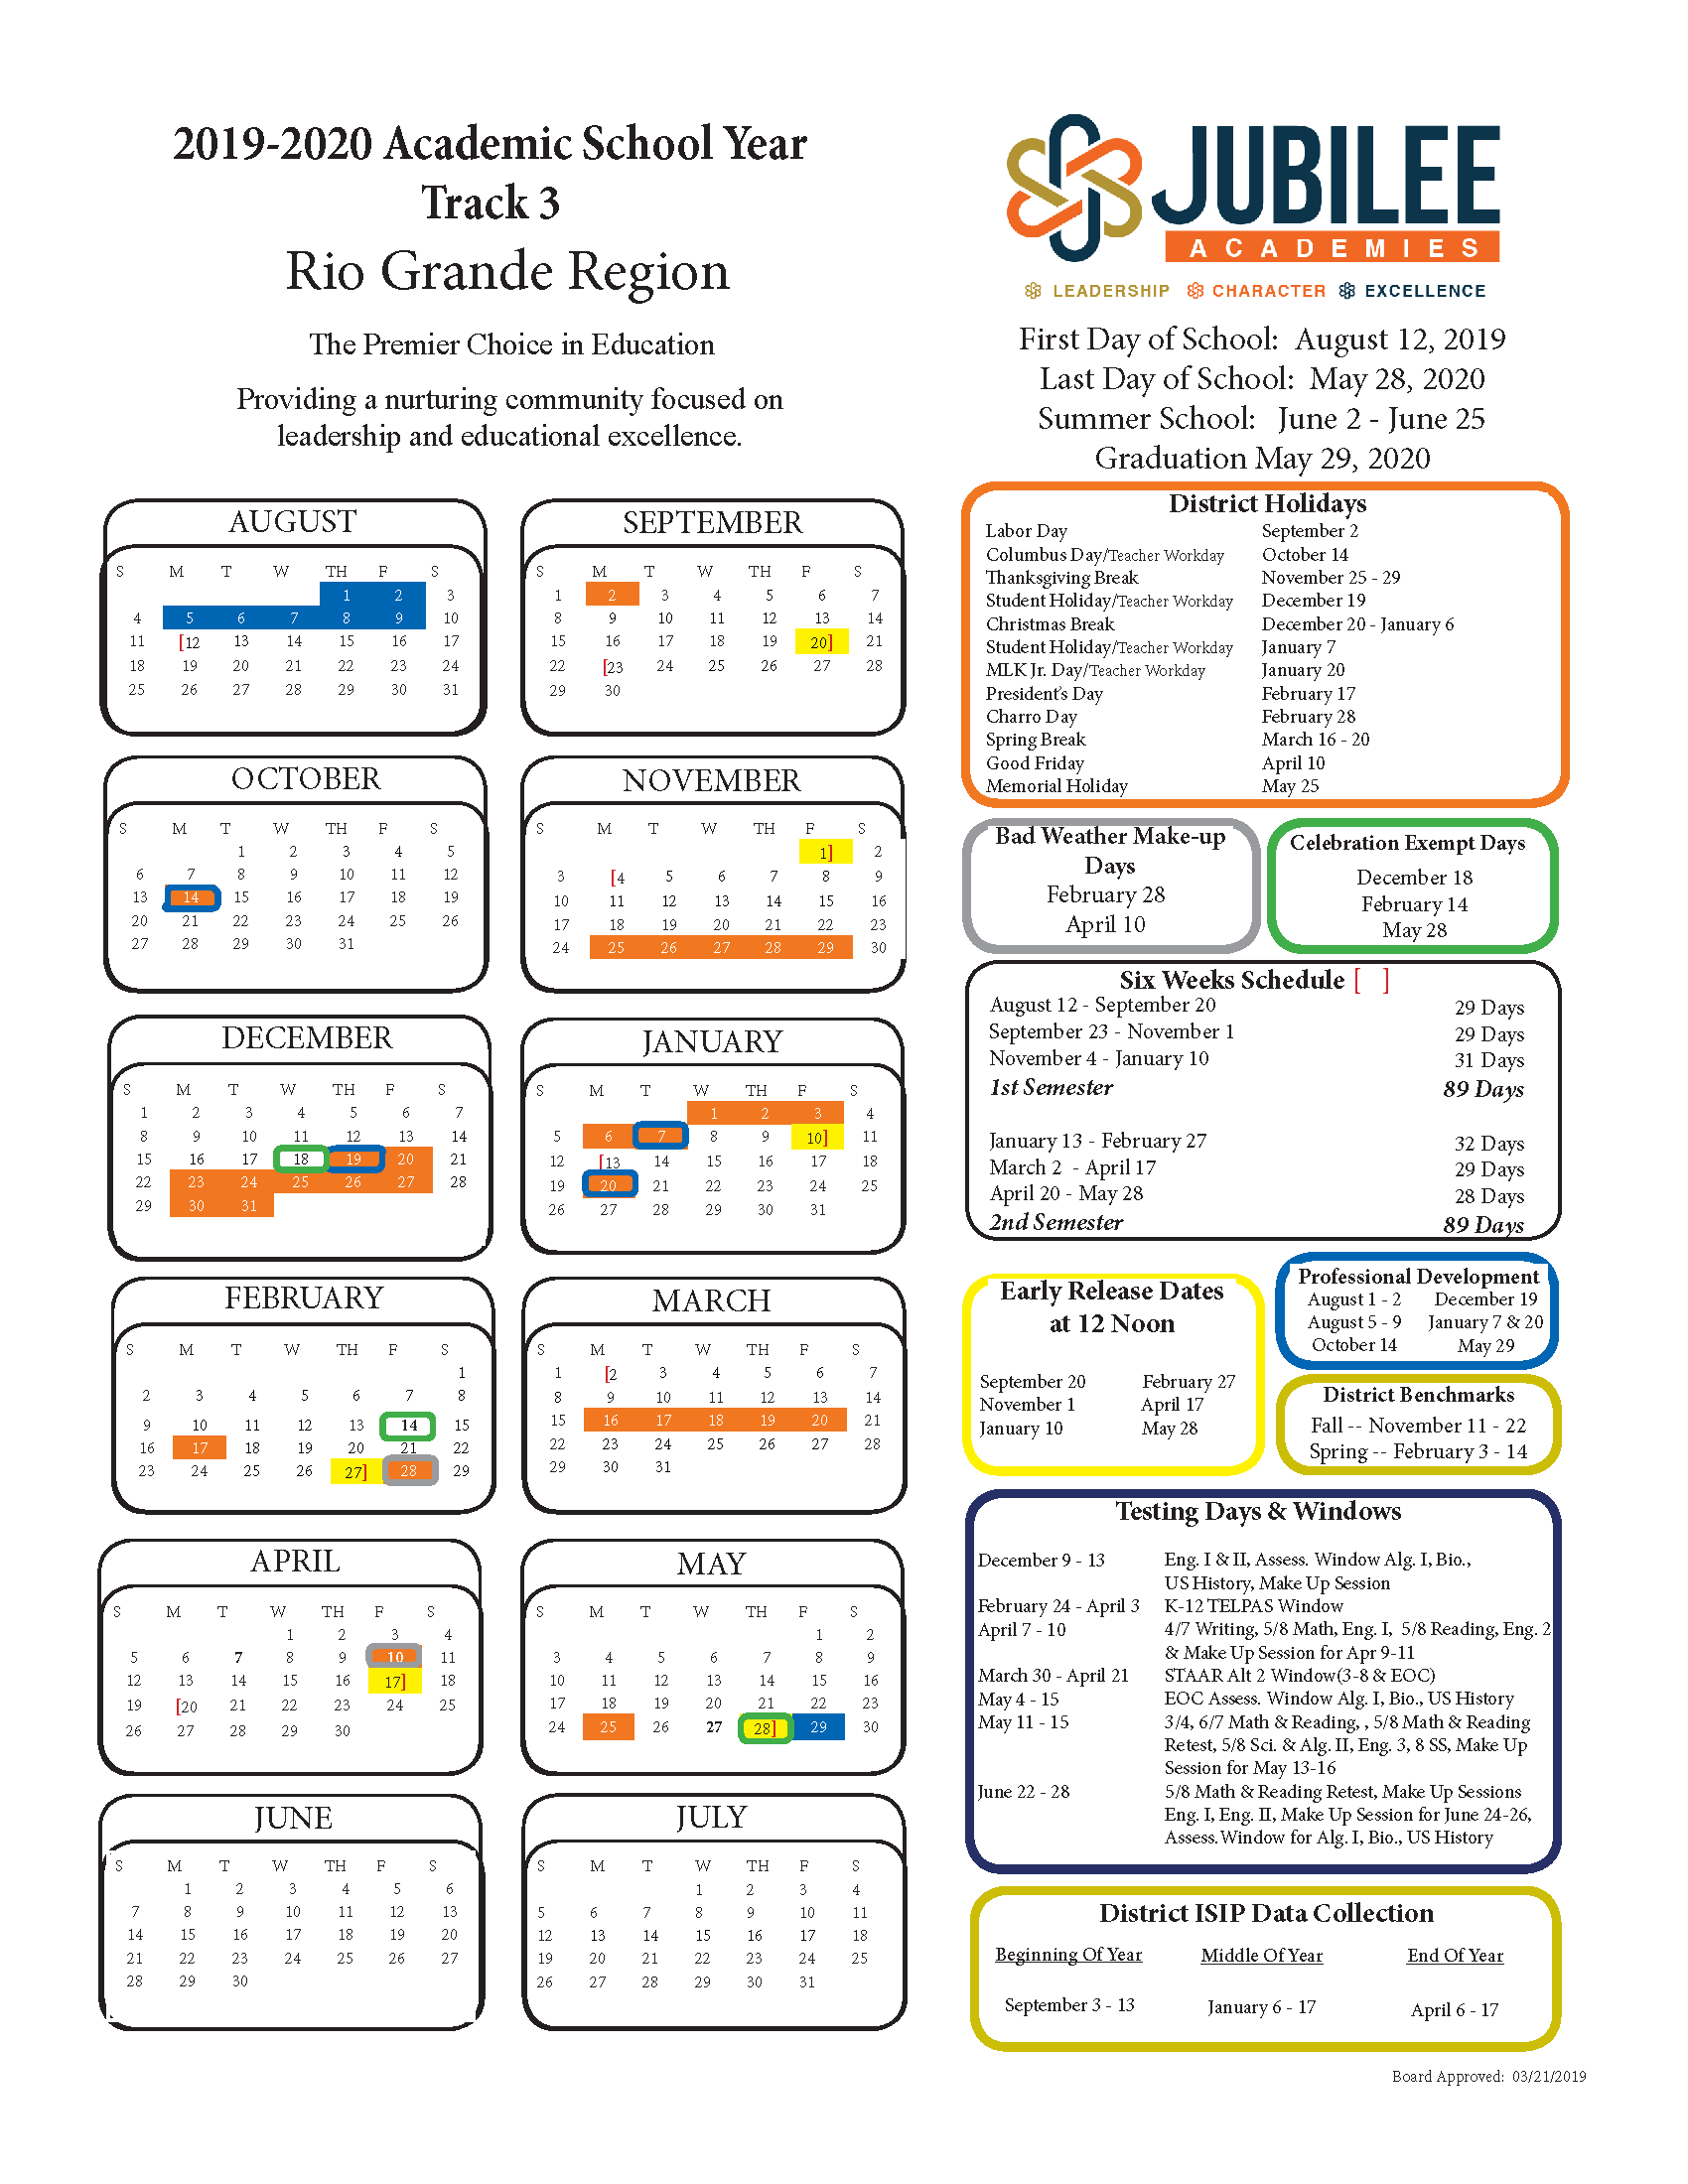 2019 2020 School Calendar – Parents – Jubilee Harlingen Within Brownsville Texas Bisd Calendar 2021 2020